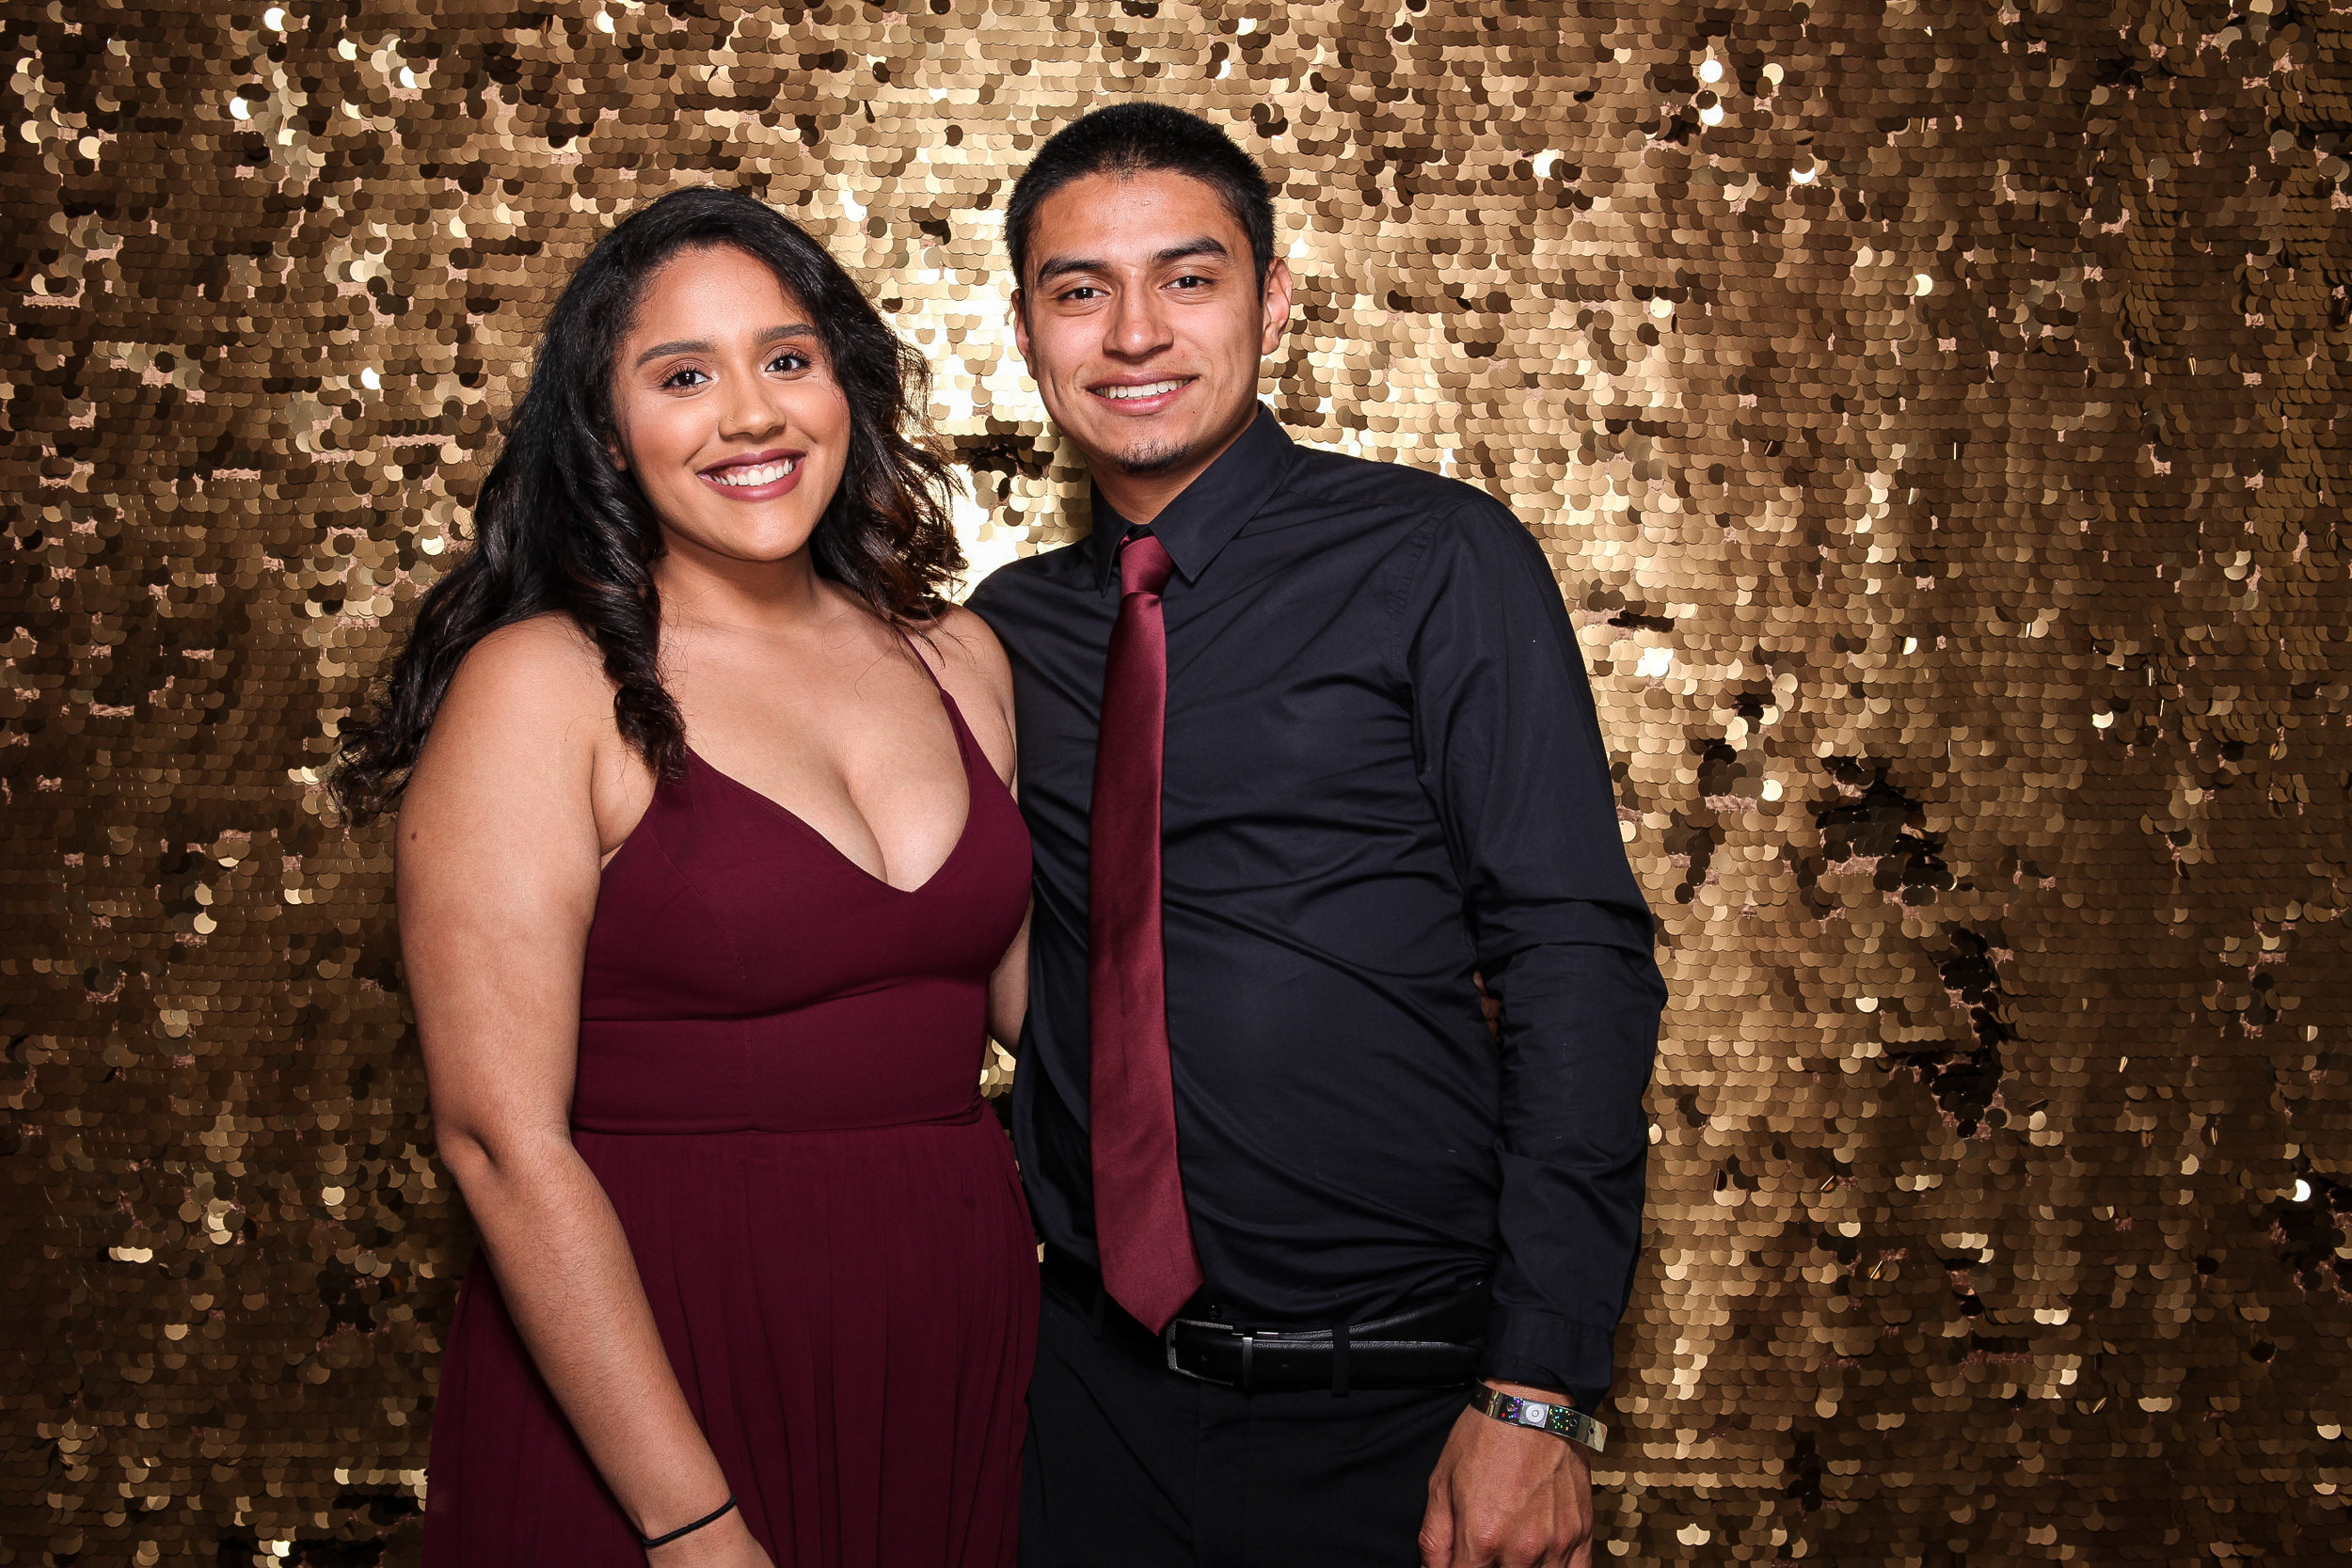 20190503_Adelphi_Senior_Formal-327.jpg